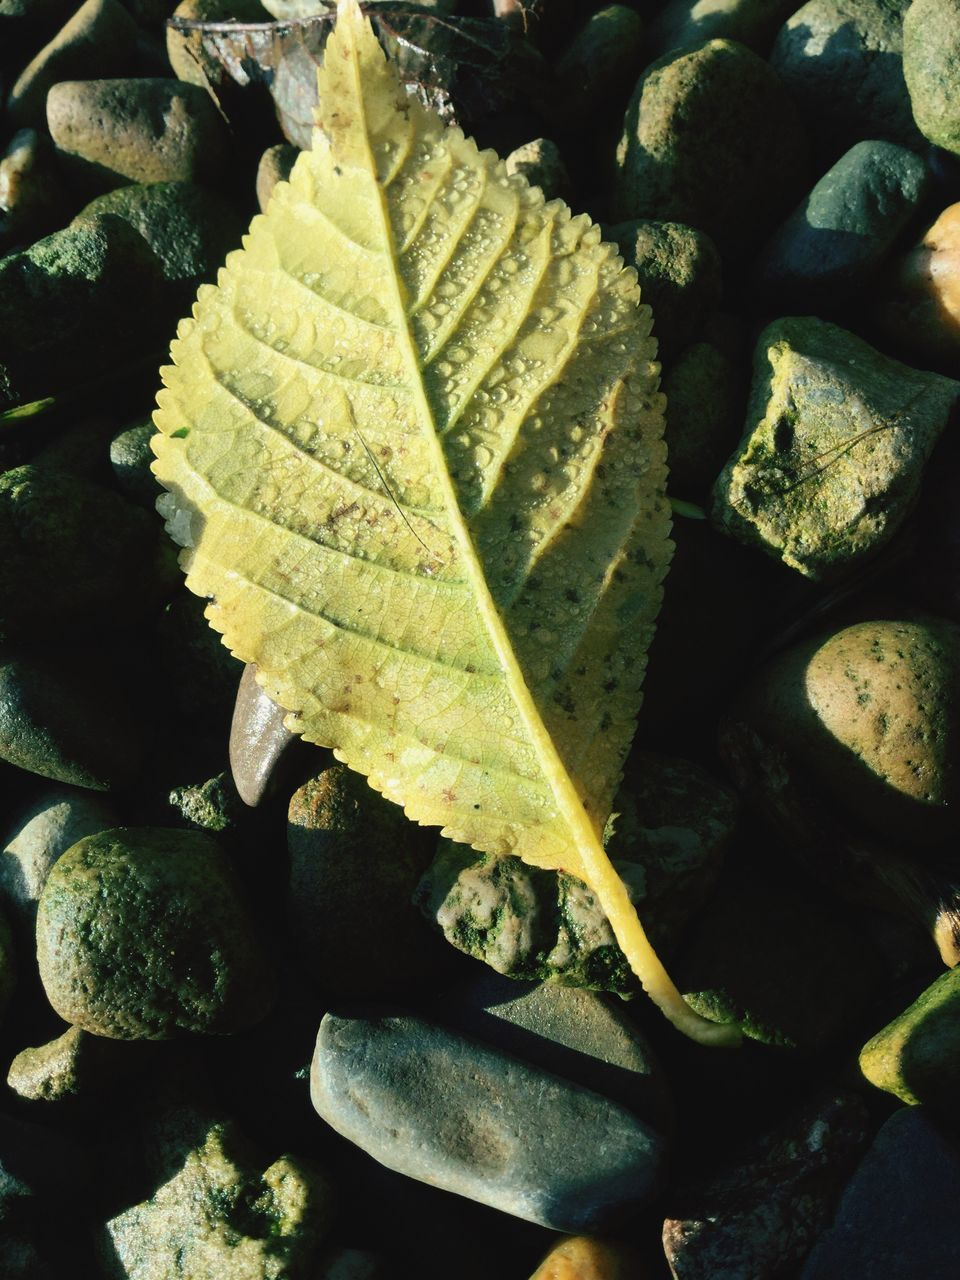 leaf, no people, day, nature, close-up, outdoors, water, beauty in nature, freshness